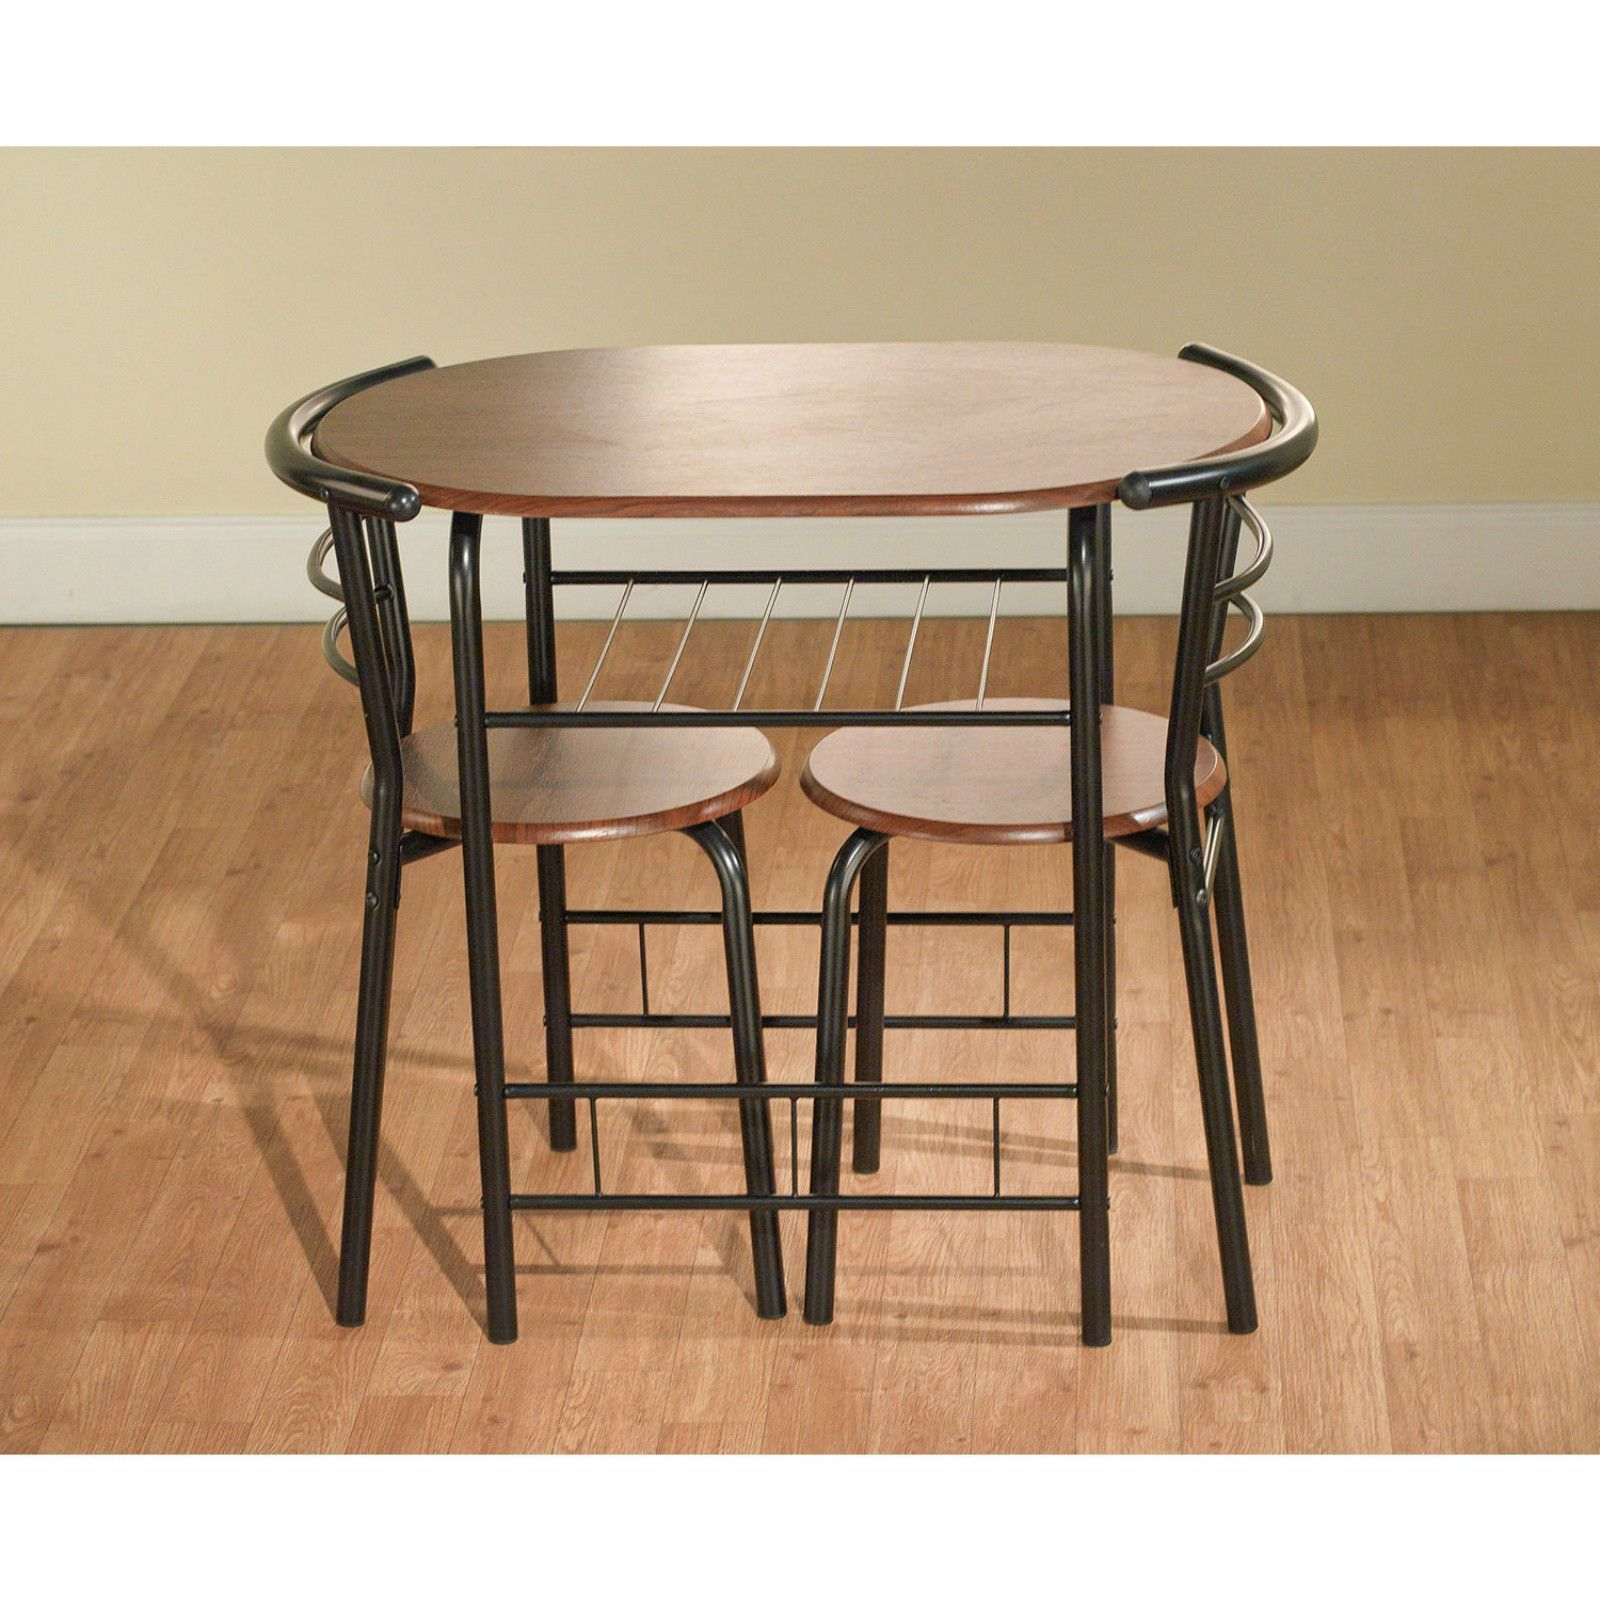 Dining Table Set For 2 Bistro Indoor Counter Height Bar